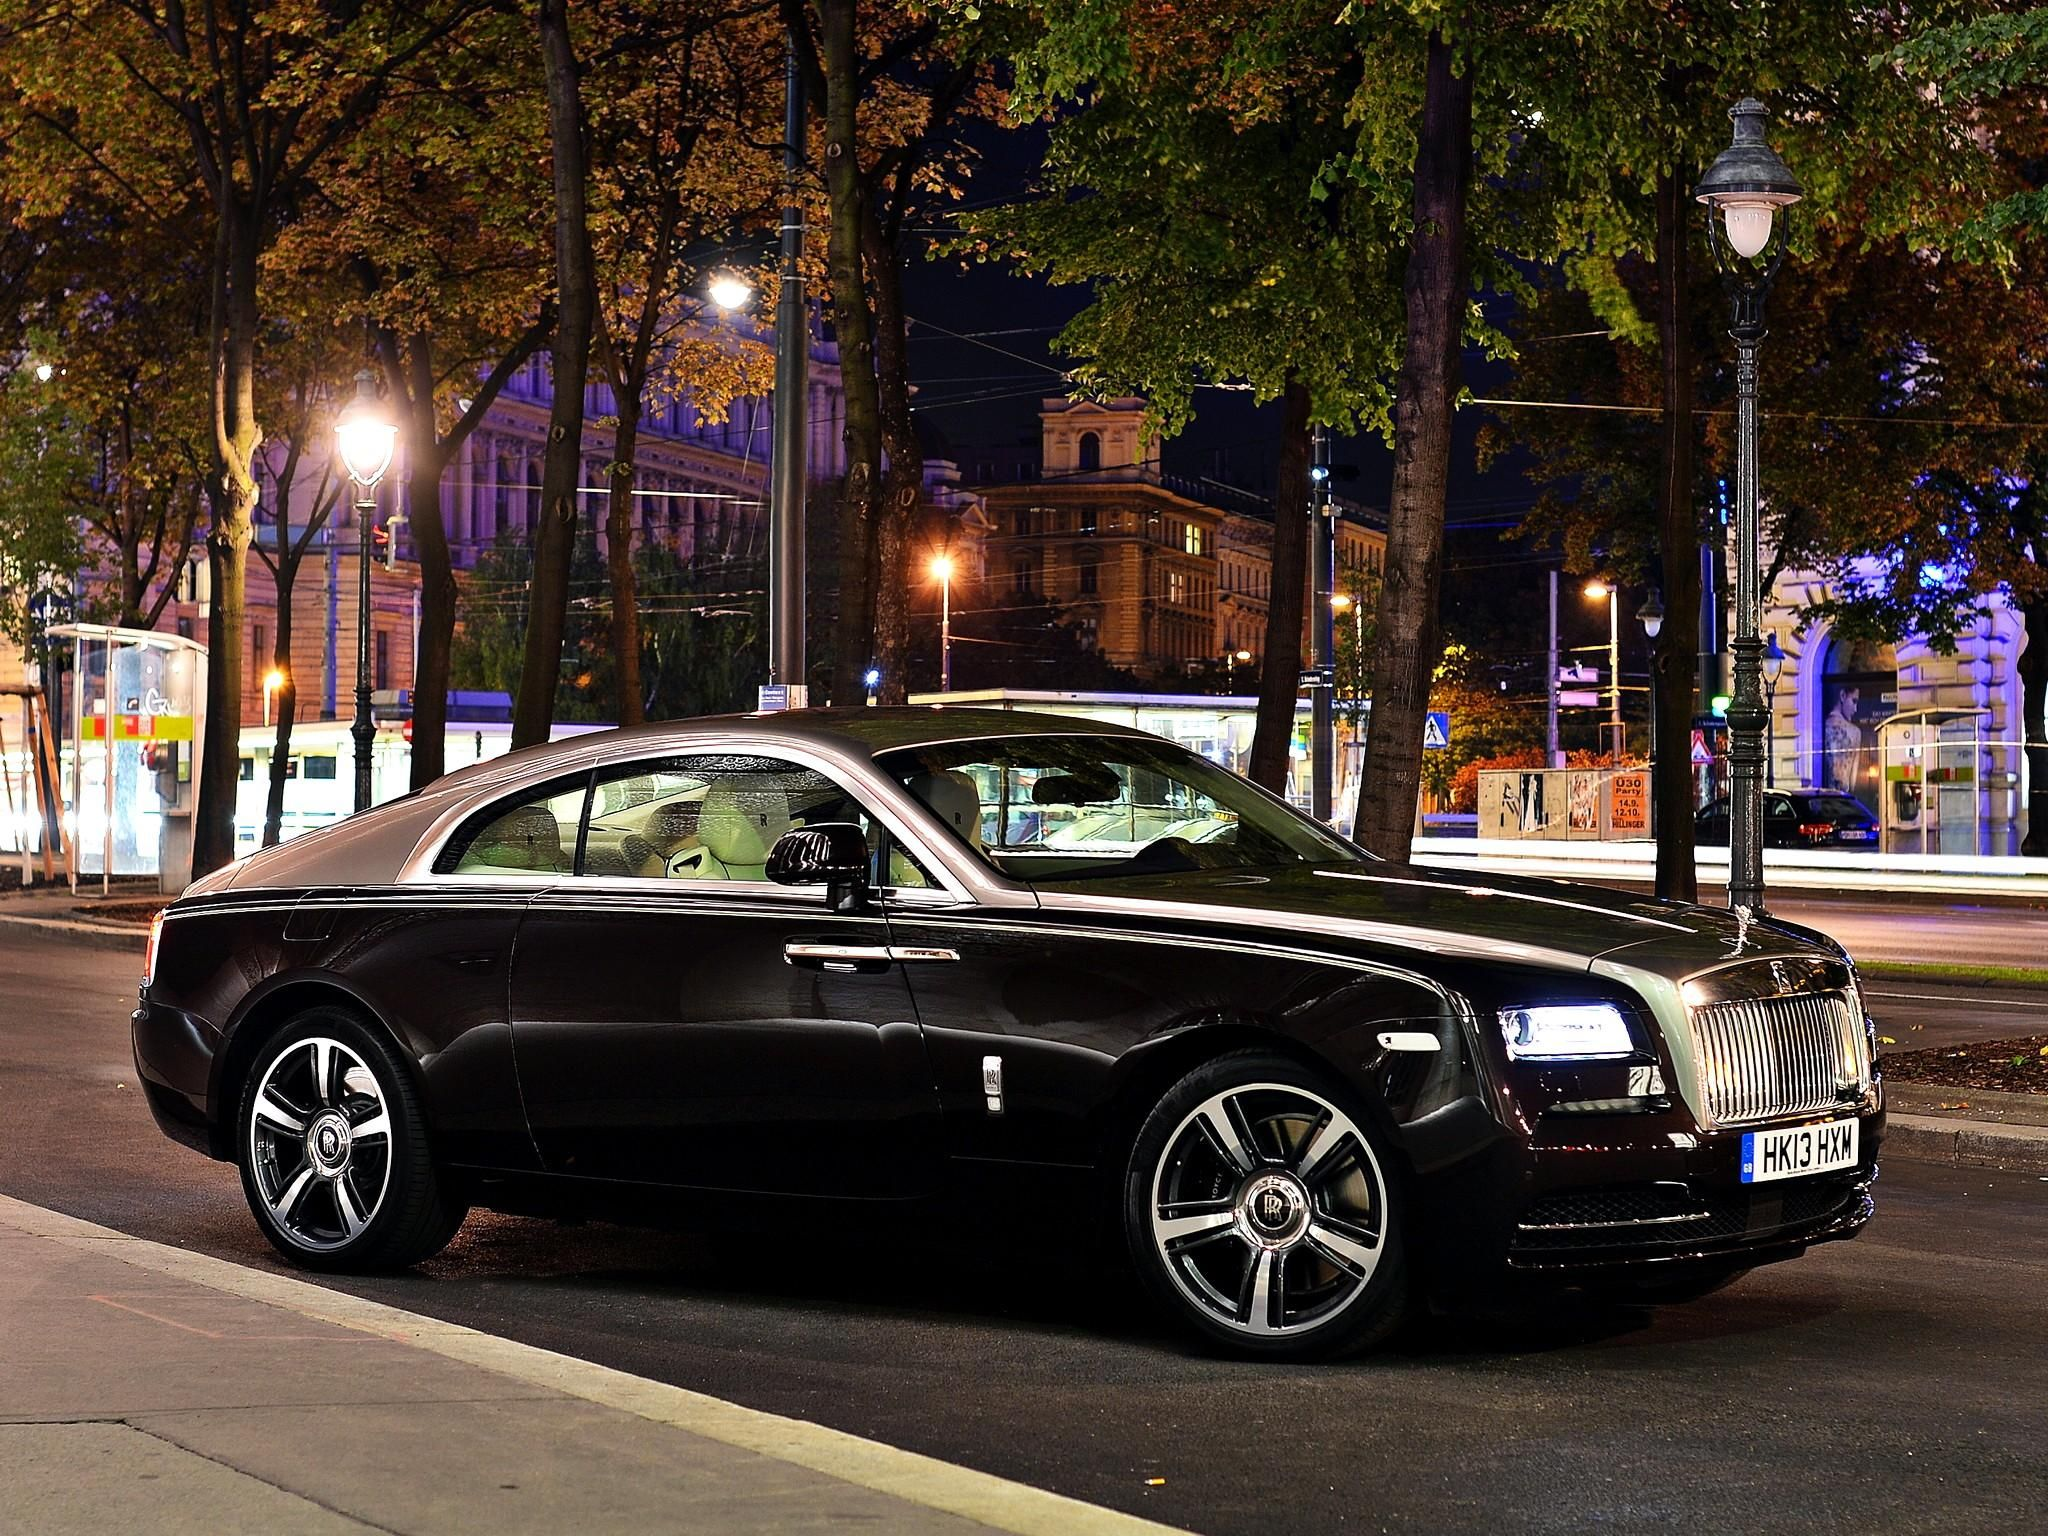 Rolls Royce Wraith Wallpaper High Quality With Resolution 2048x1536 Px 60026 KB